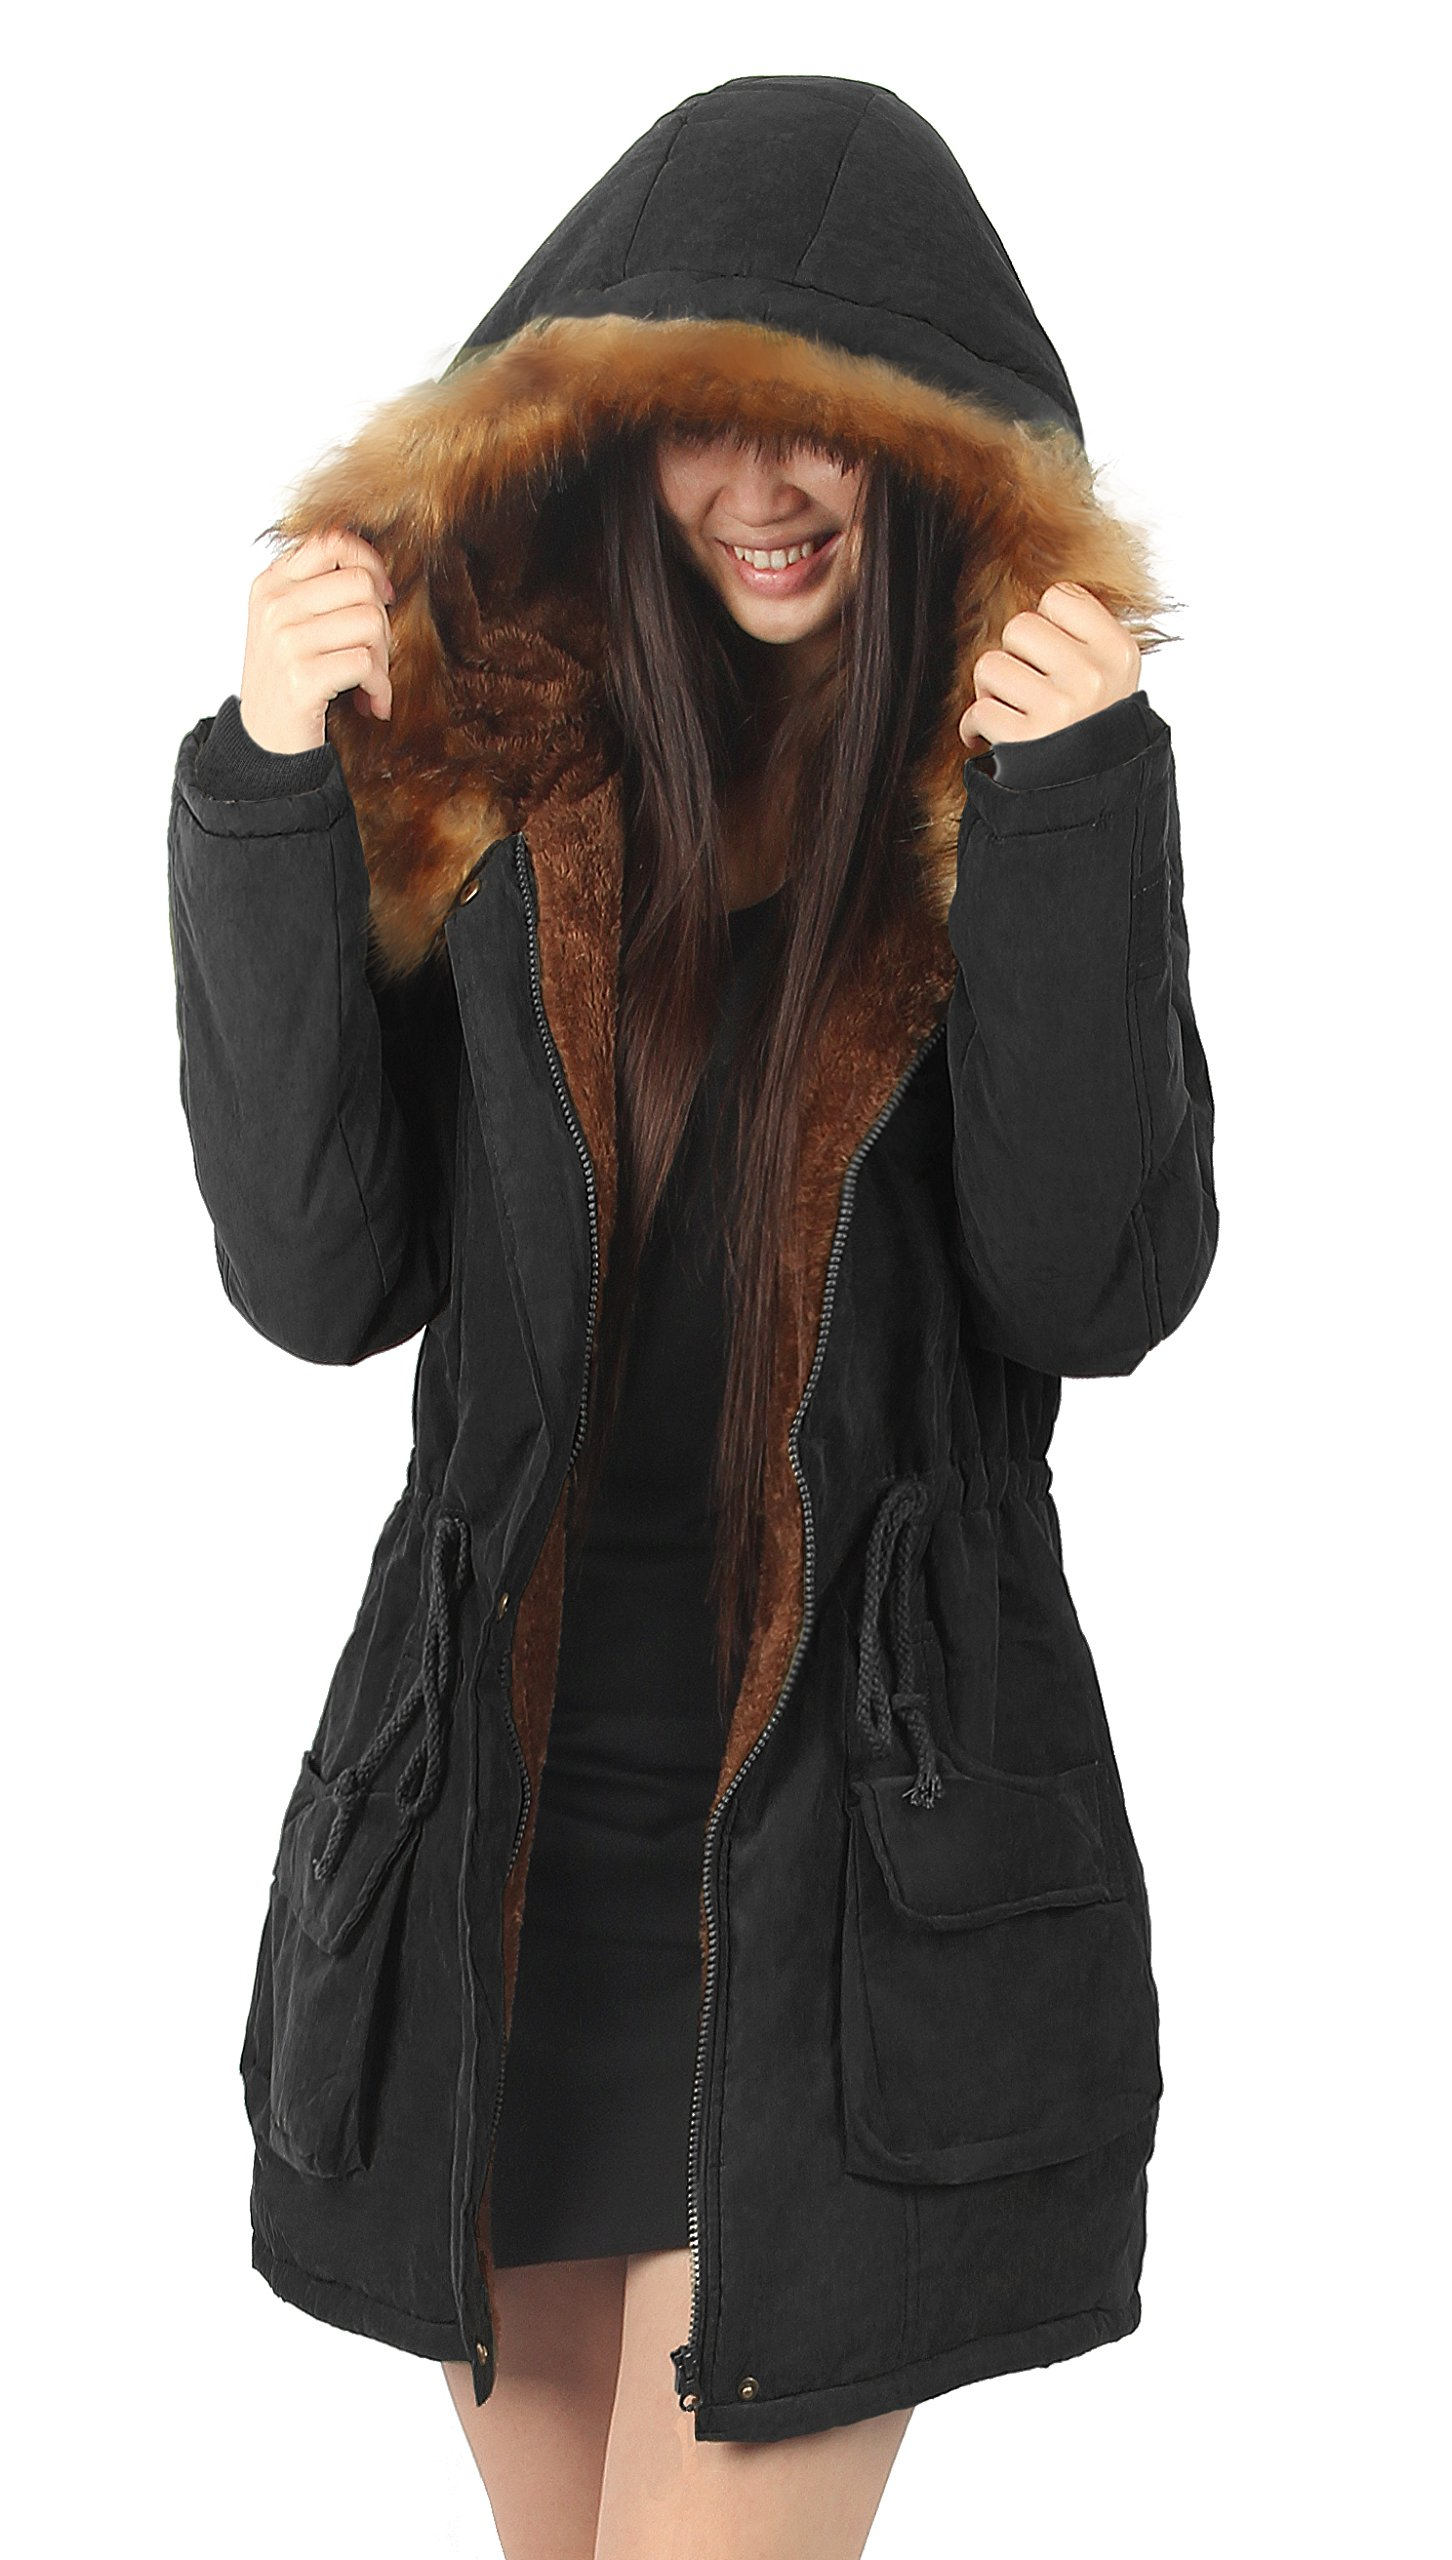 iloveSIA Womens Hooded Coat Faux Fur Lined Jacket Black 8 by iloveSIA